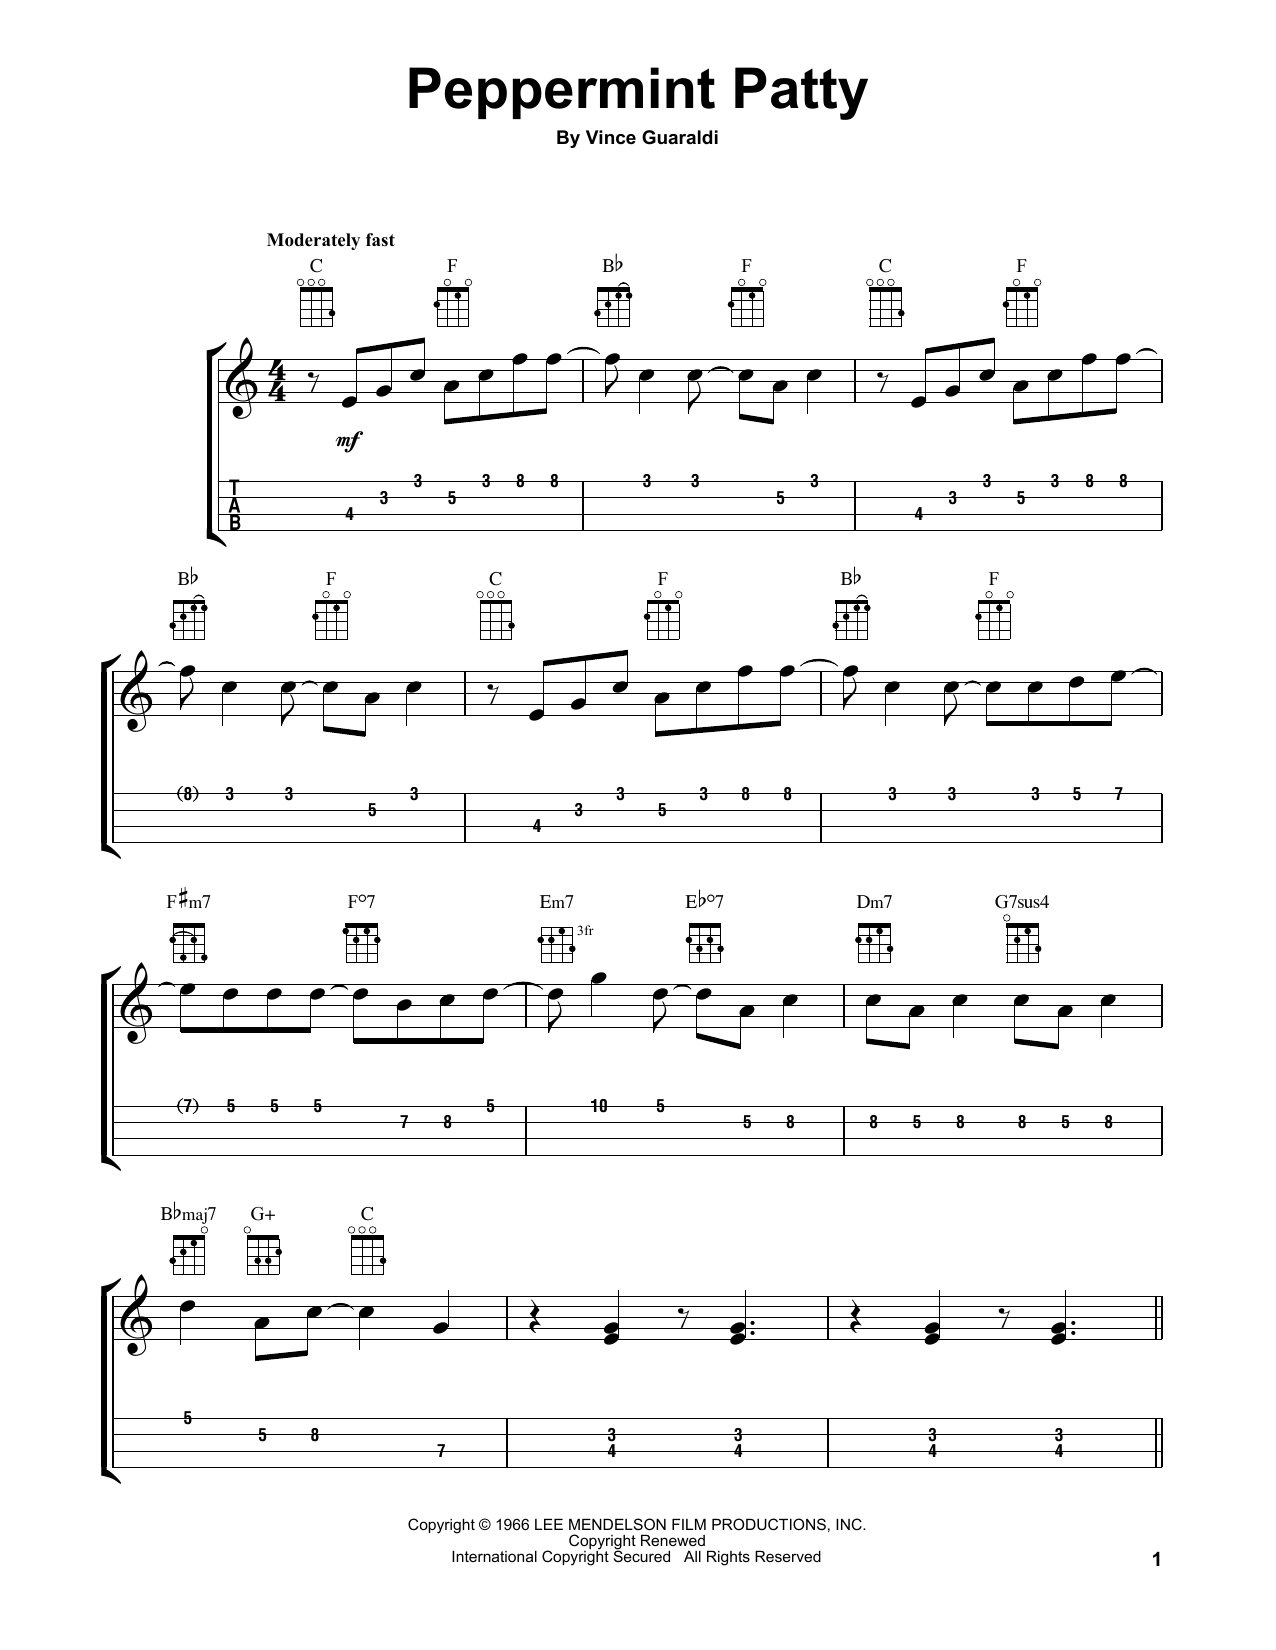 Peppermint Patty Sheet Music